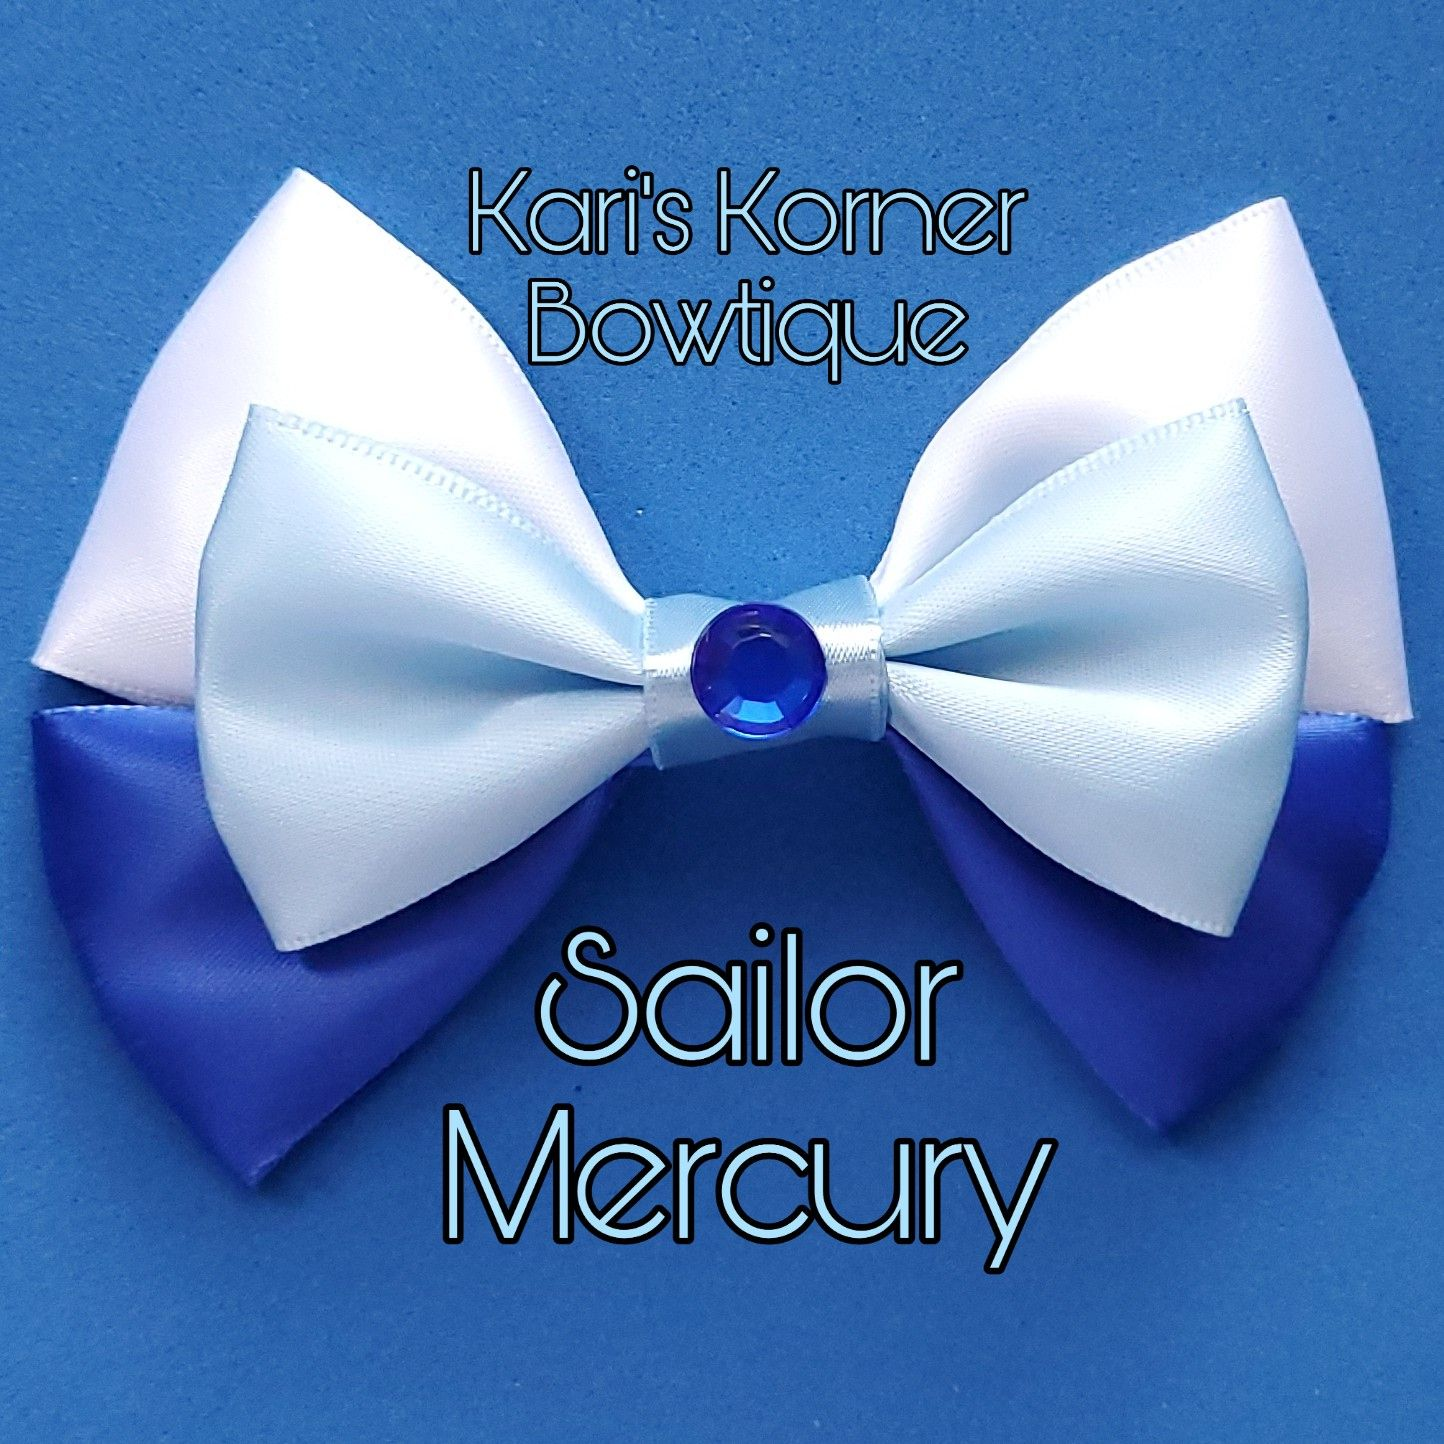 Sailor Mercury Inspired Bow Etsy In 2020 Sailor Mercury Sailor Mini Moon Amethyst Steven Universe